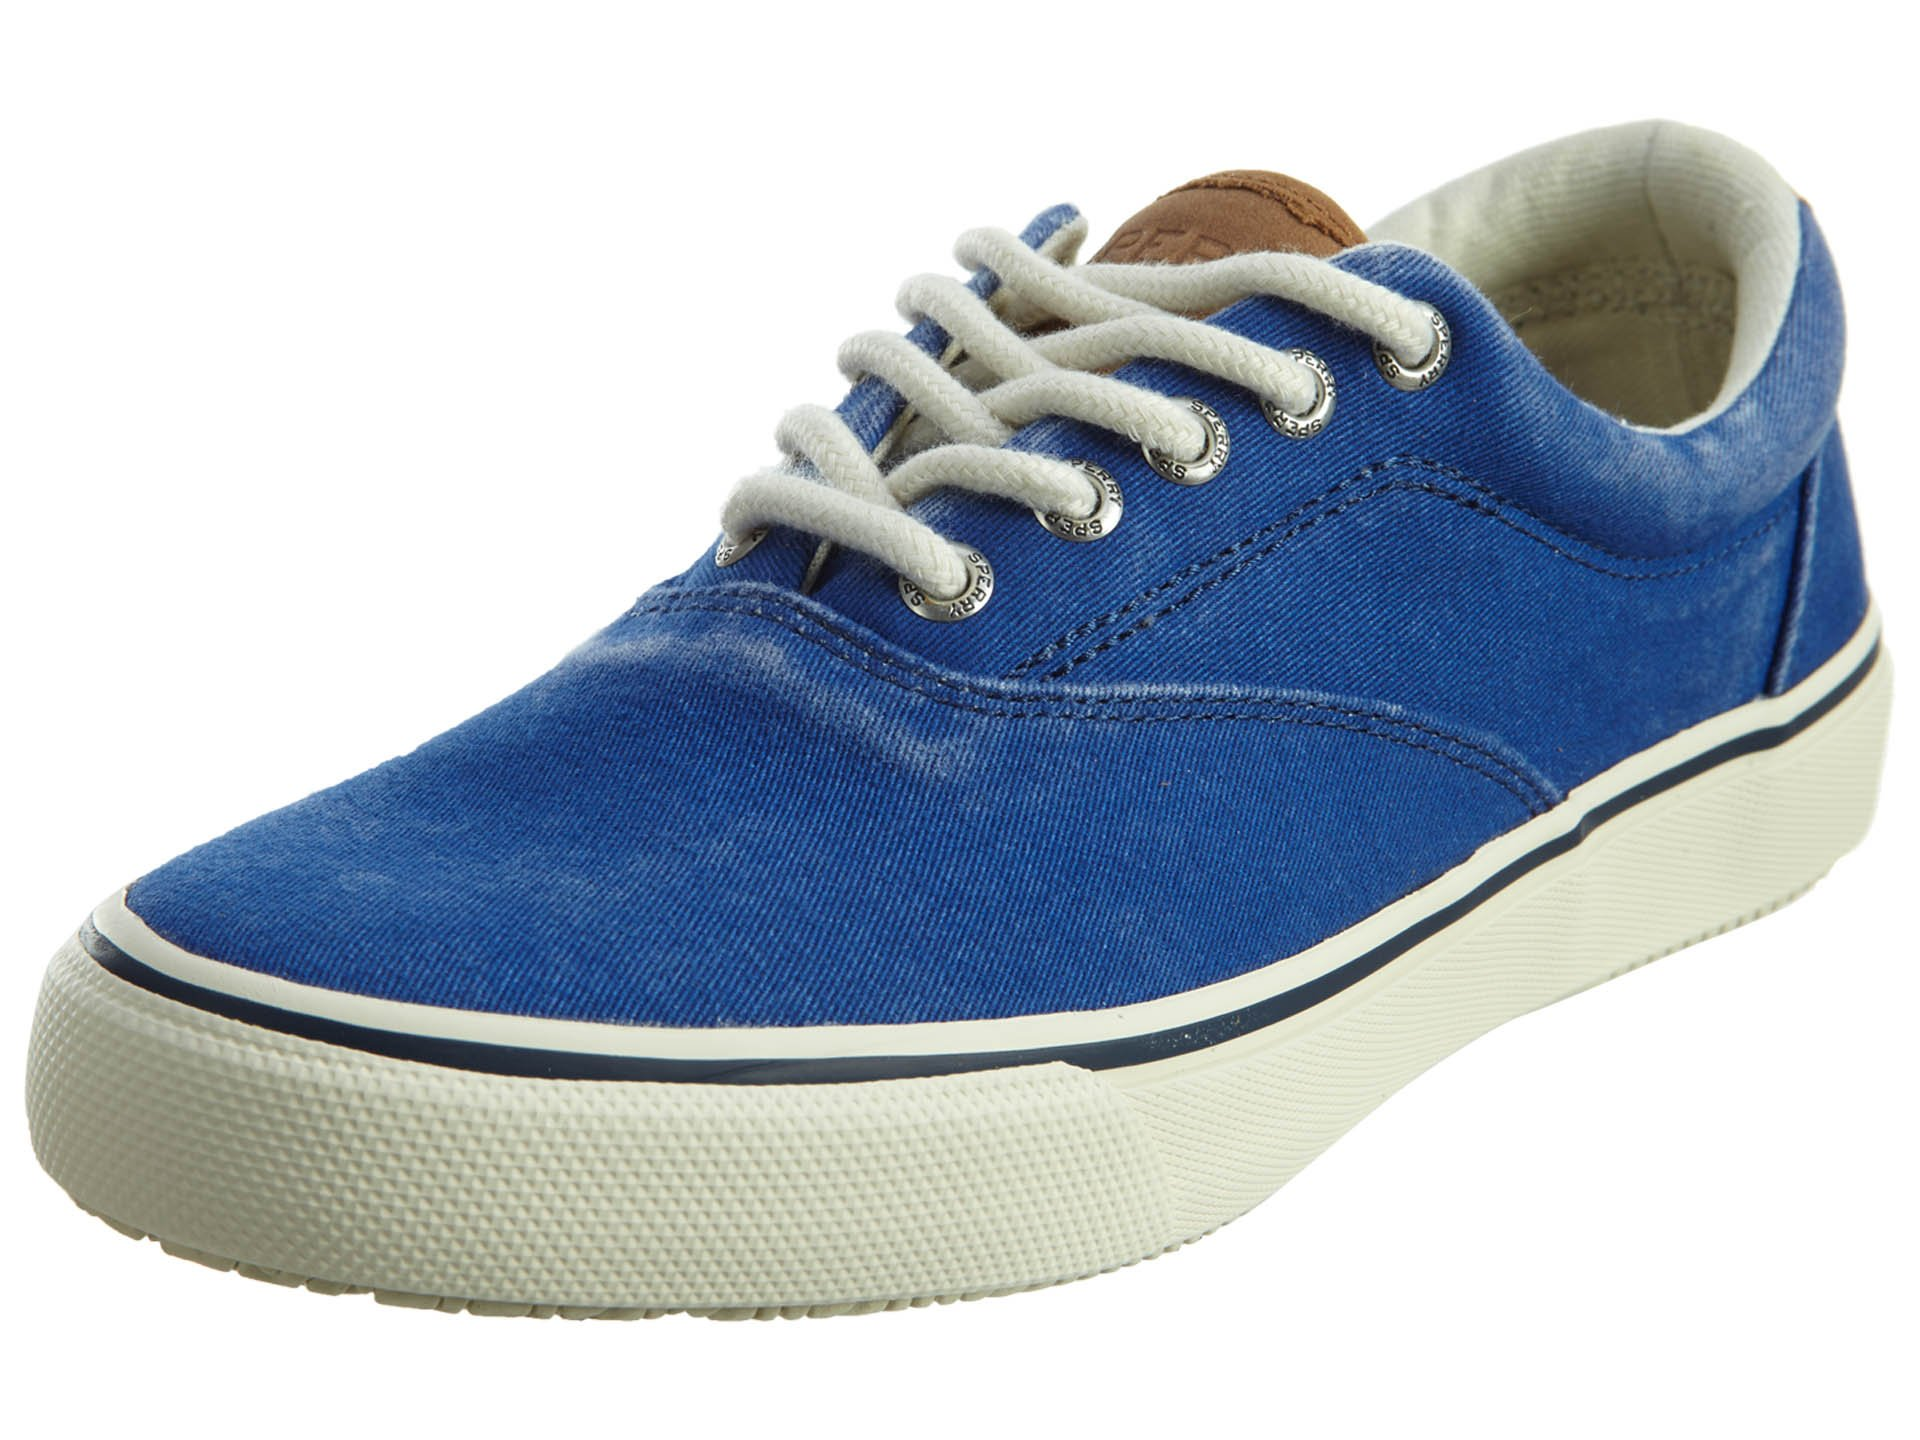 Sperry Top-Sider Men's Striper II CVO Royal Blue Casual Shoe 9 Men US